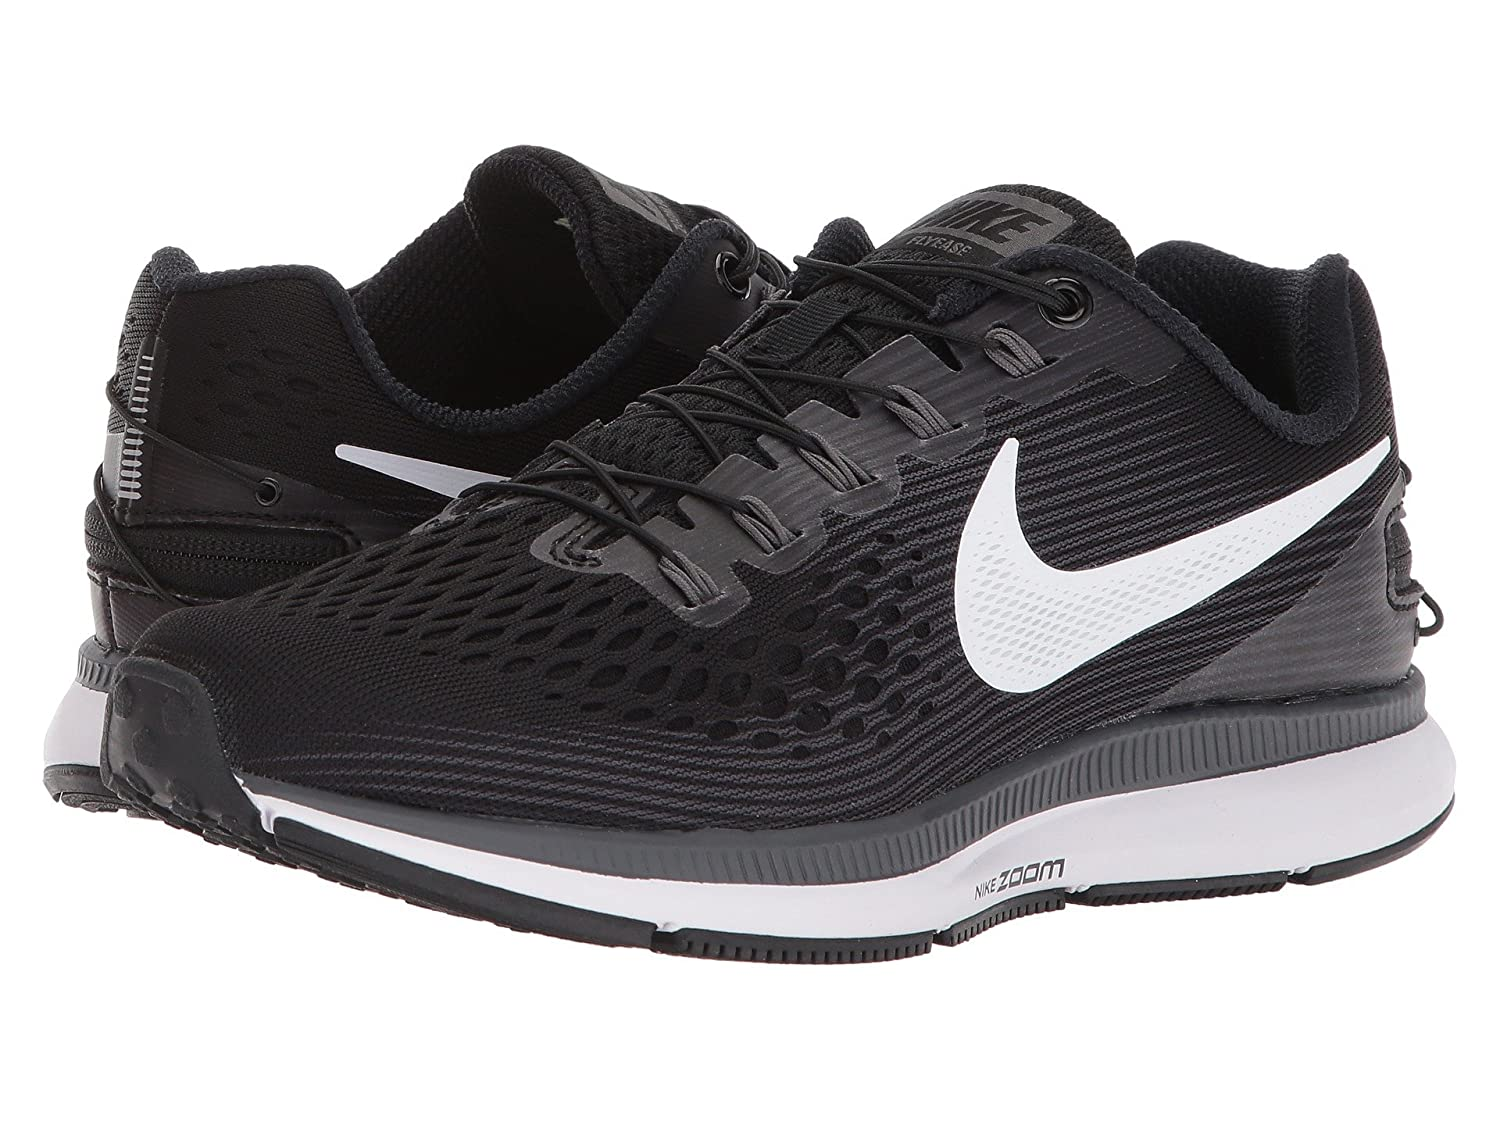 7f2b230c1f99f Nike Air Zoom Pegasus 34 flyease - Running Shoes